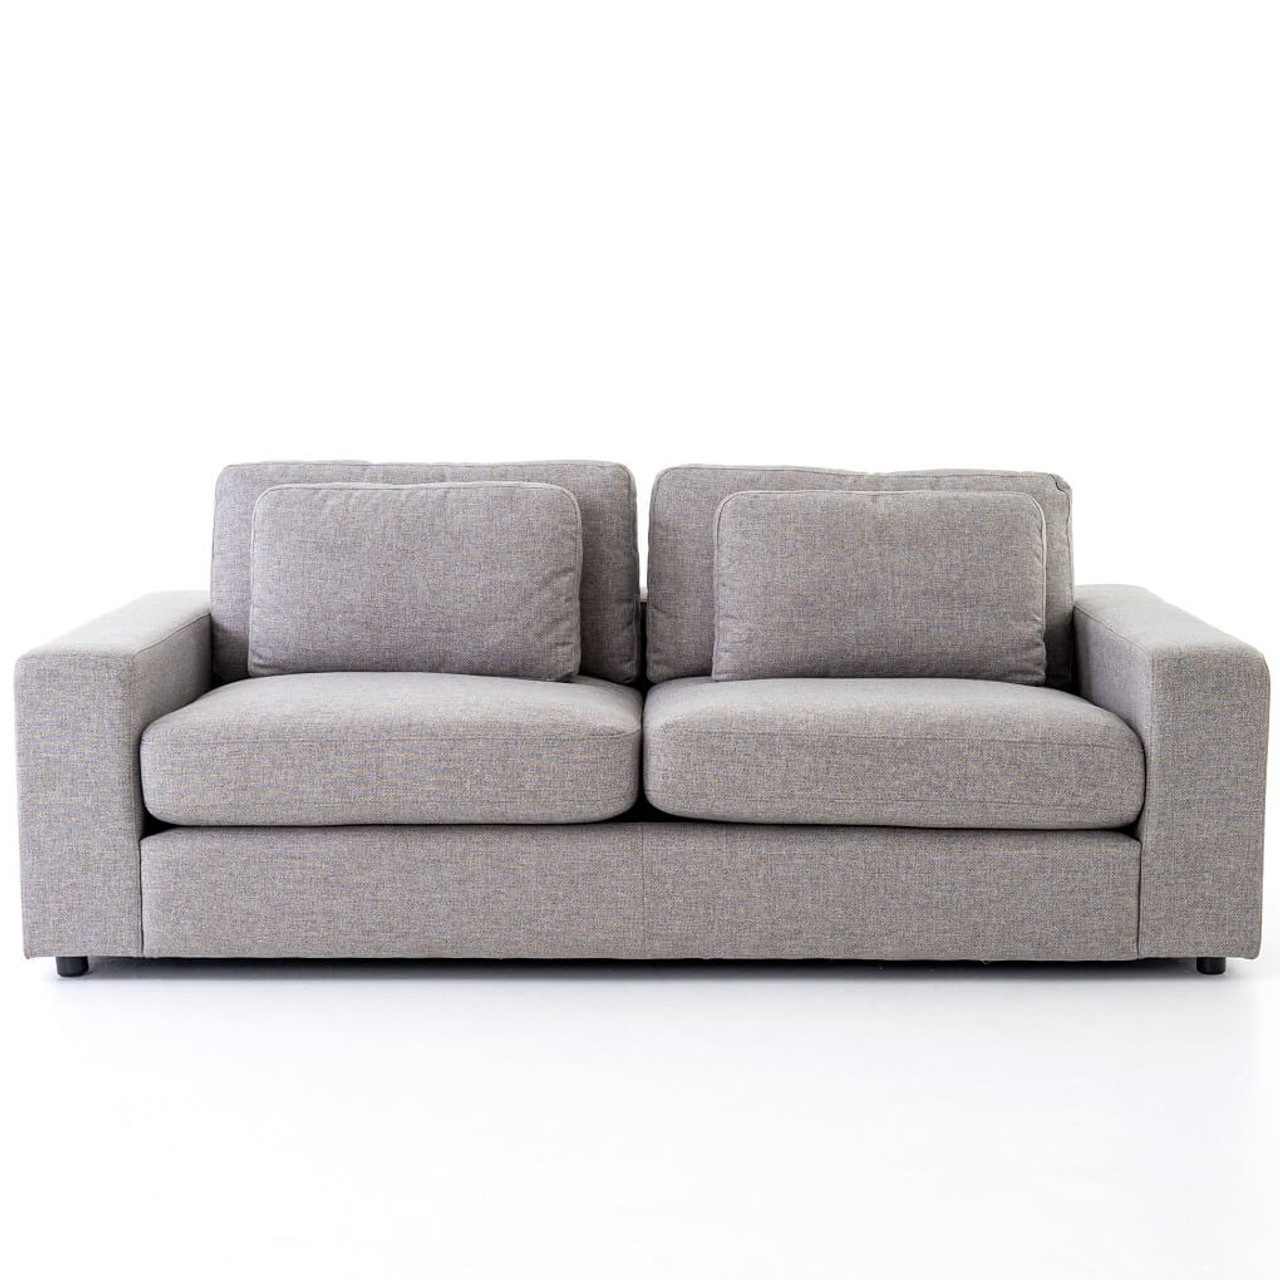 Bloor Contemporary Gray Fabric Upholstered 2 Cushion Sofa 82\